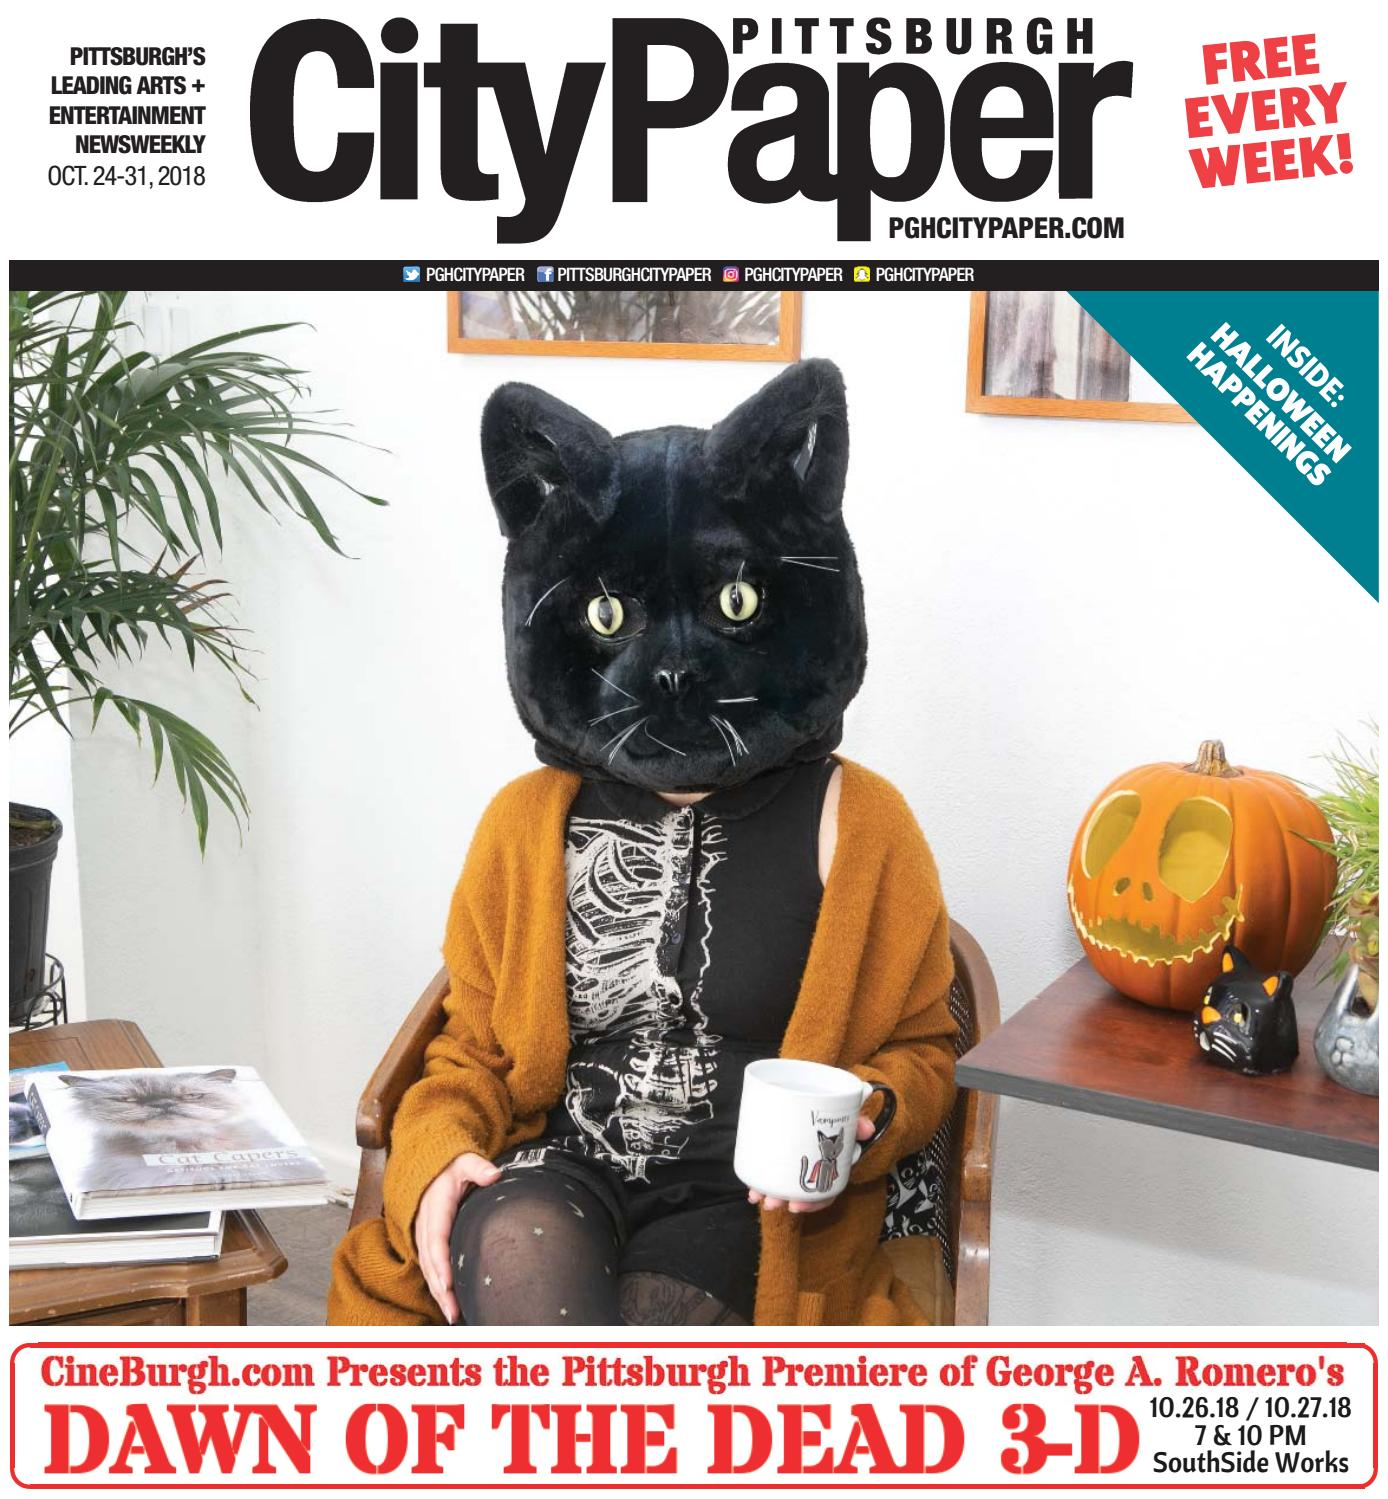 October 24, 2018 - Pittsburgh City Paper by Pittsburgh City Paper